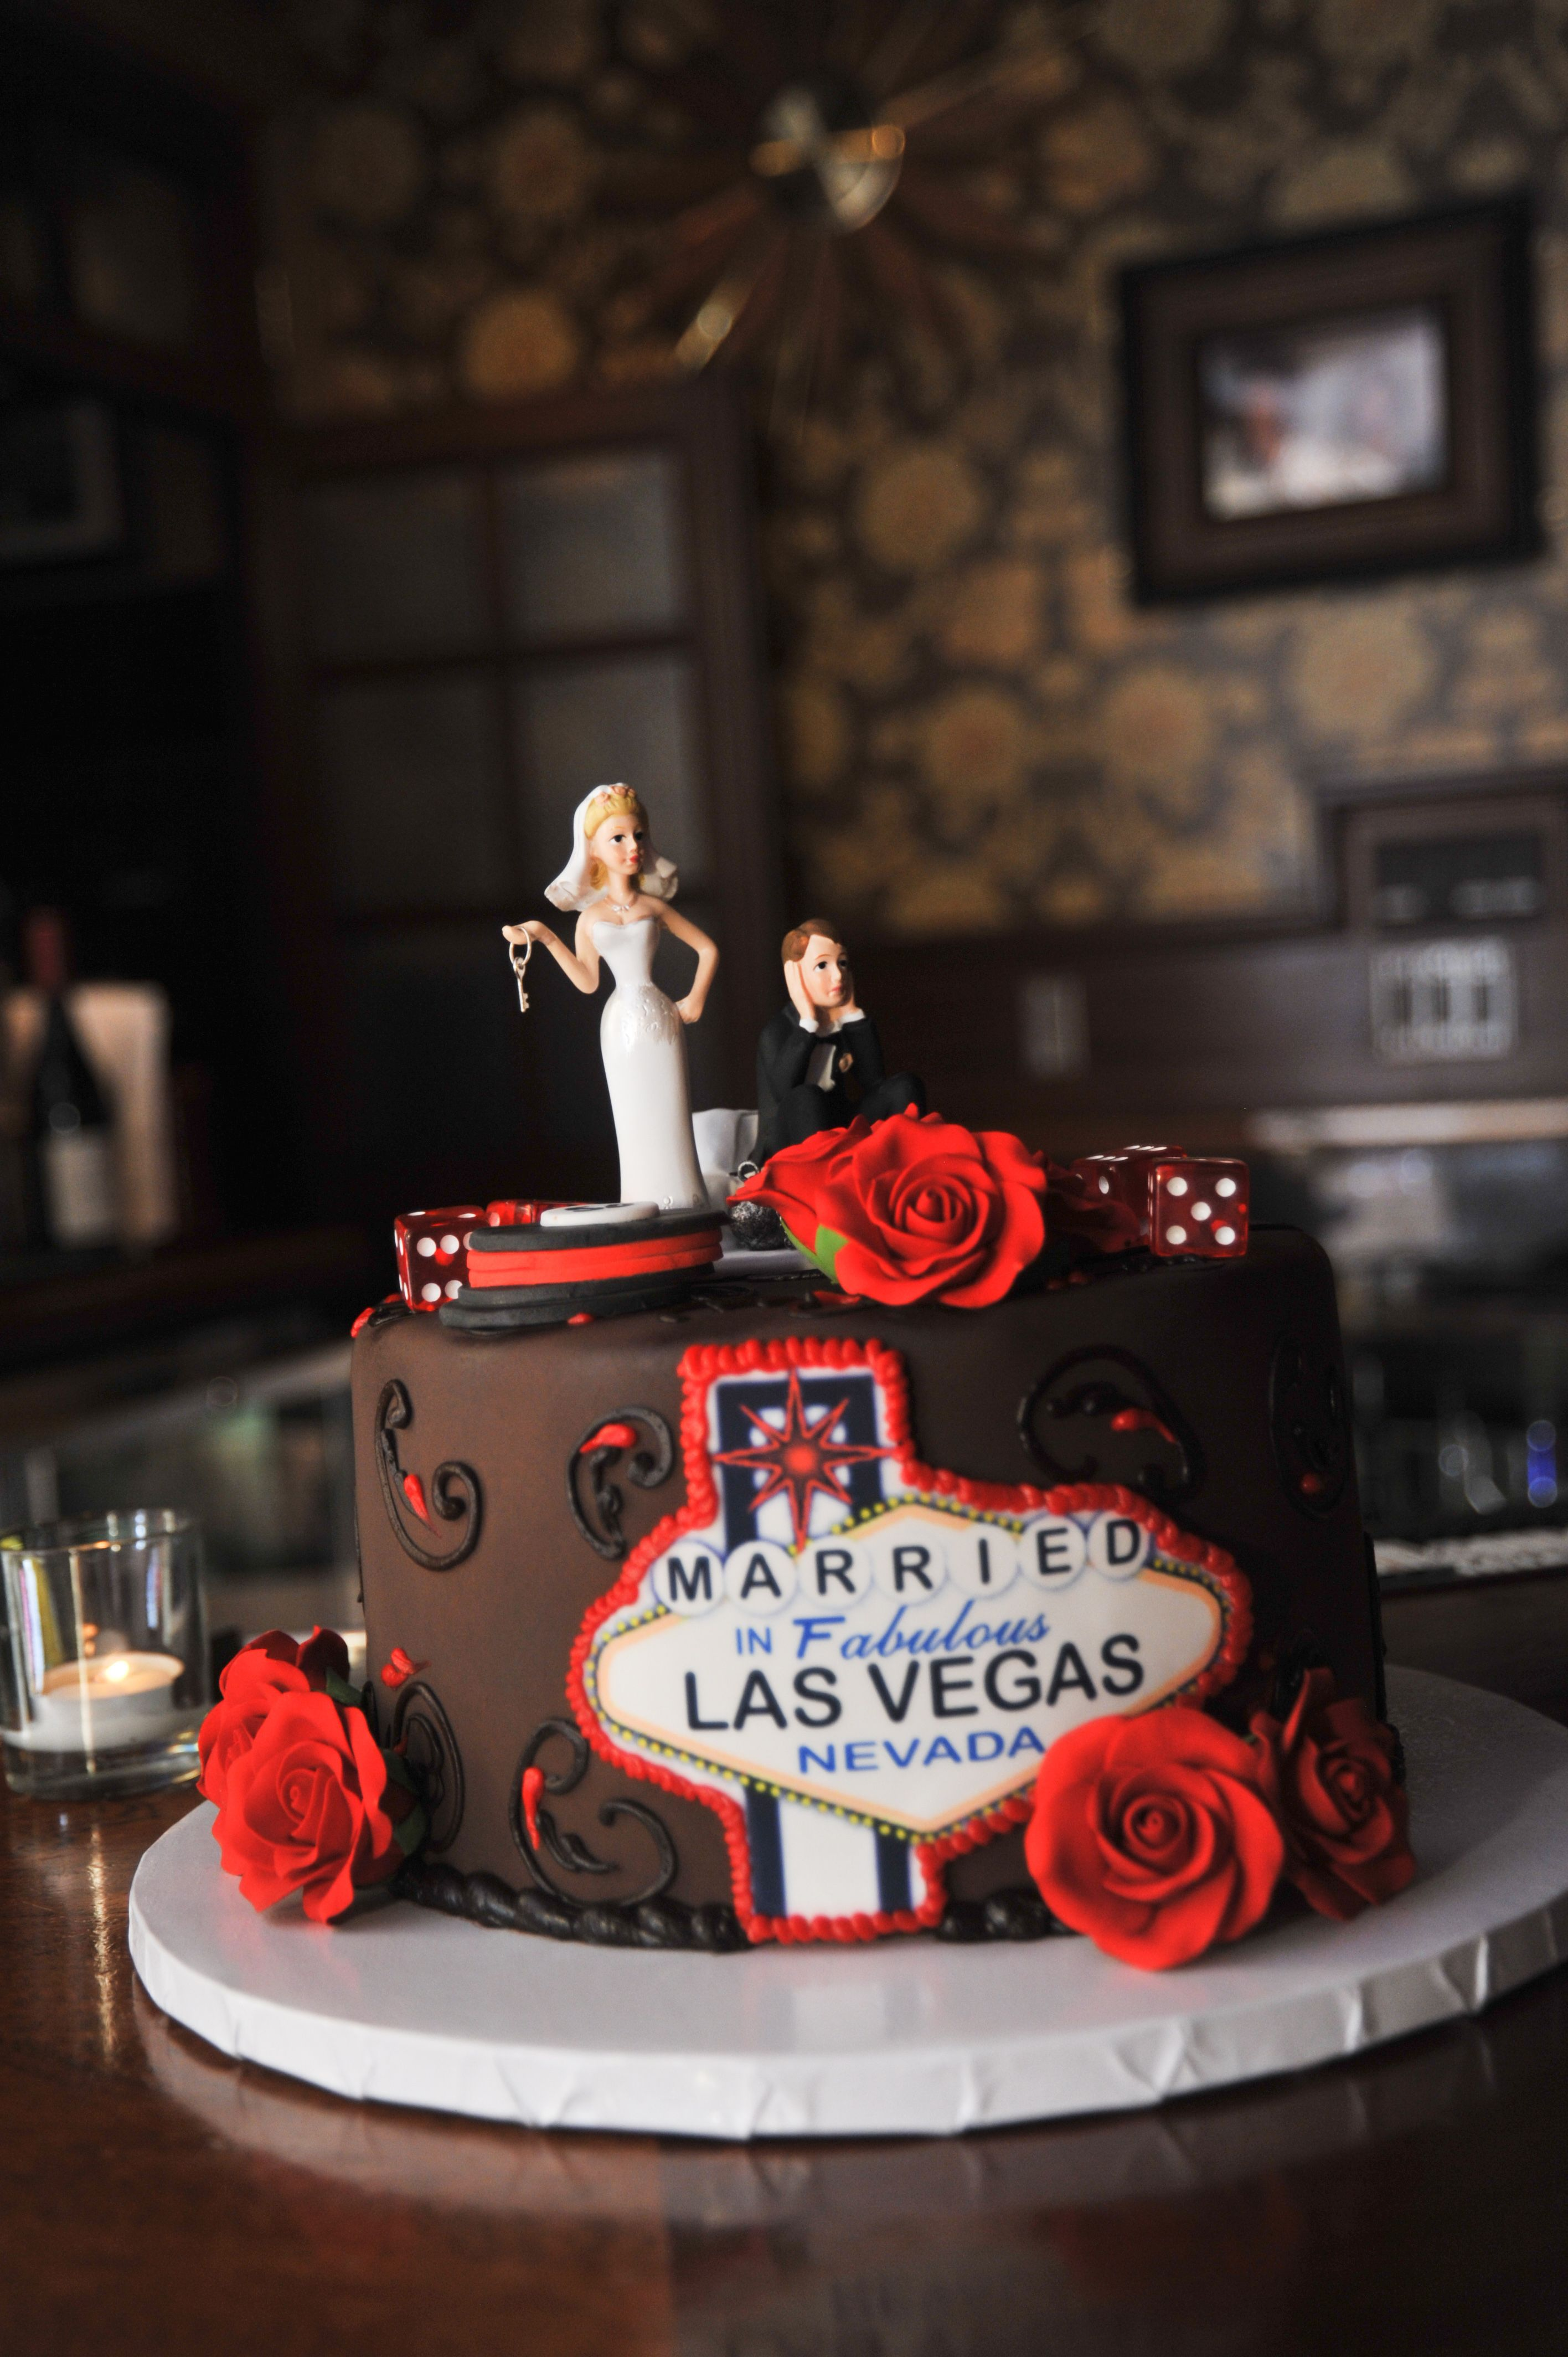 Customized cake toppers are a great way to personalize your Las Vegas  themed wedding cake.